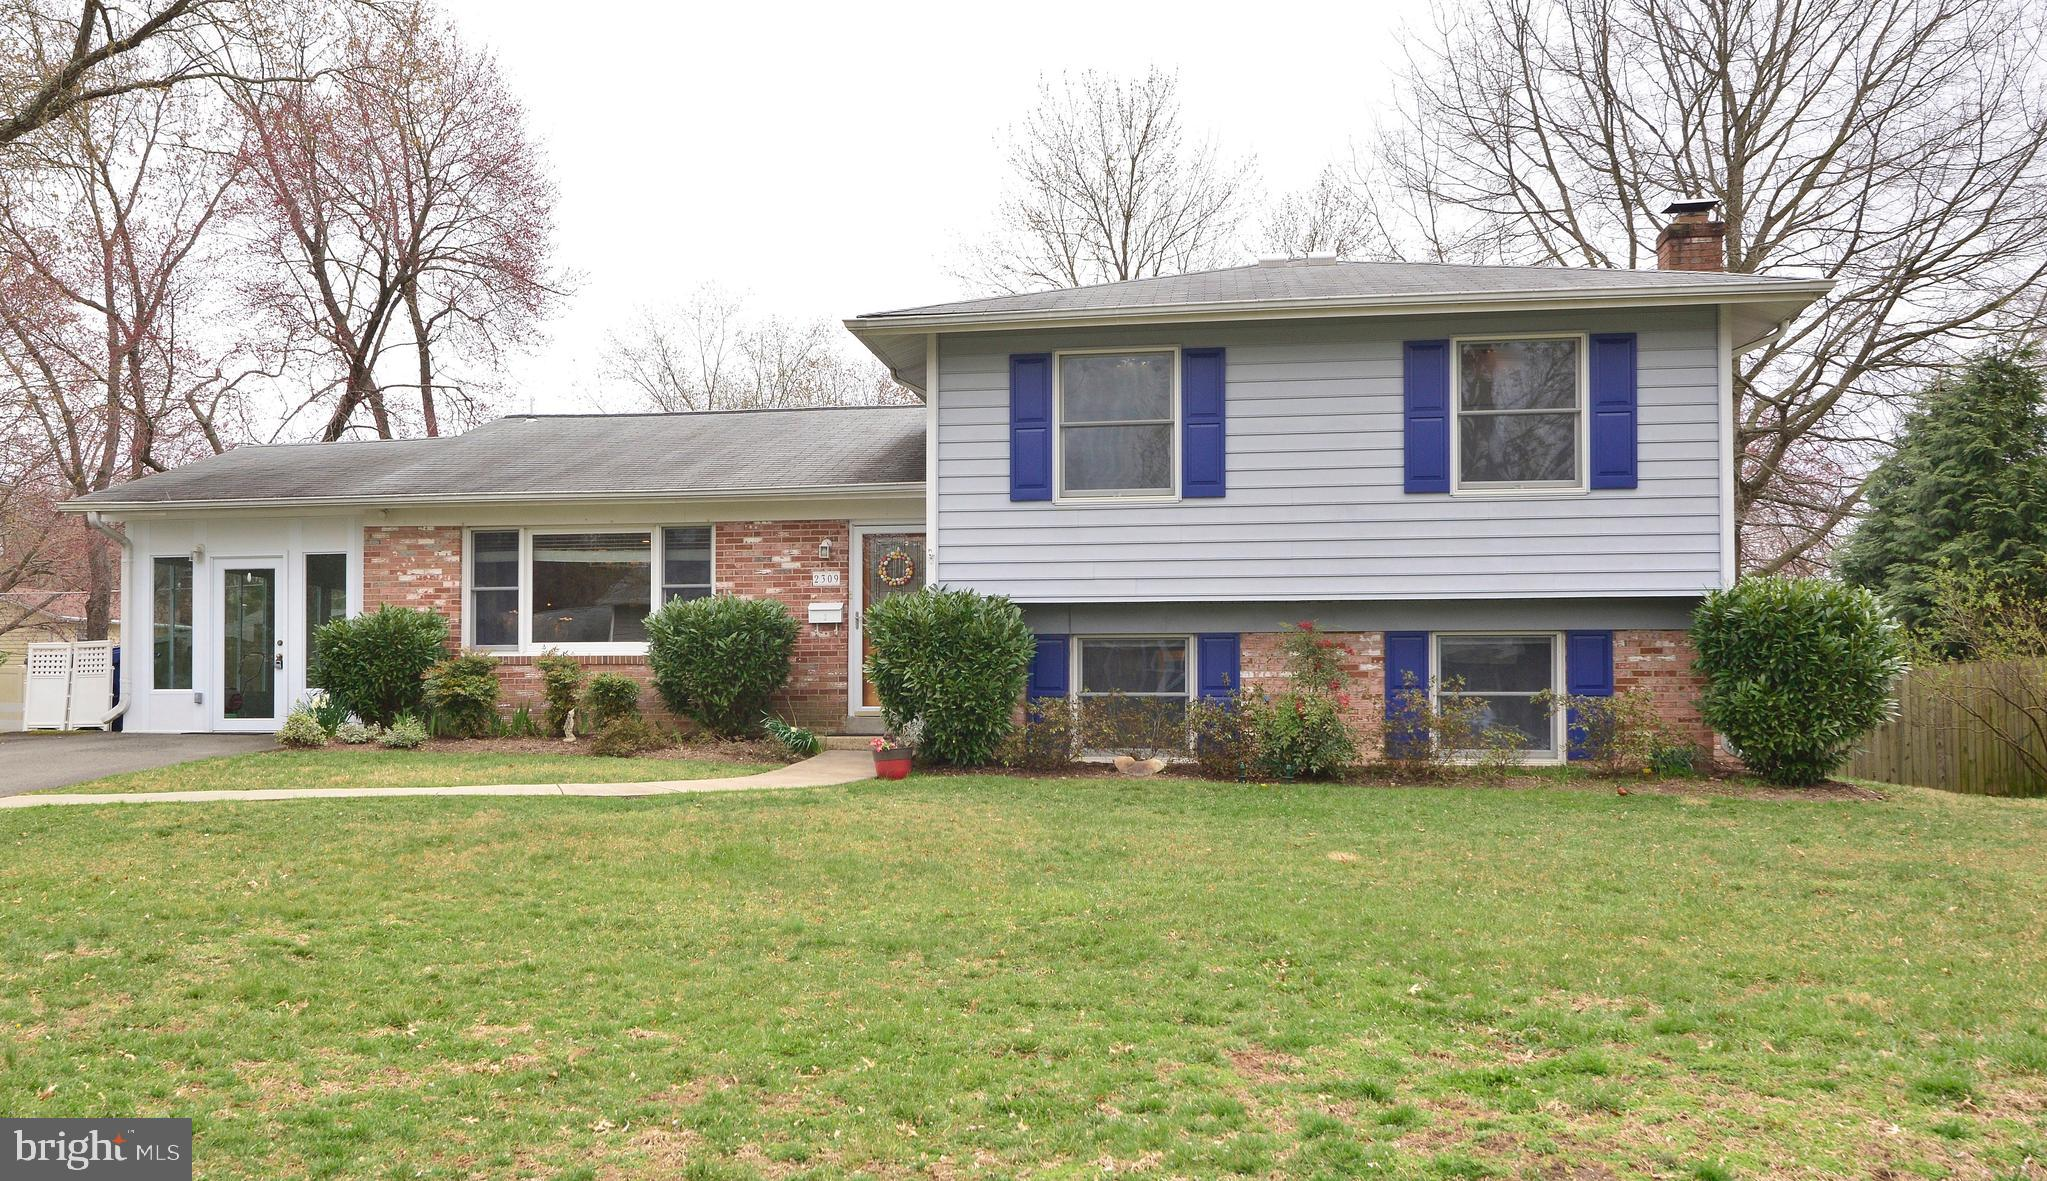 Awesome 5BR/2.5BA Home w/ Tons of Upgrades! Renov Eat-In Kit w/ Merillat cabs, granite, glass tile backsplash, SS applncs! Gorgeous Refin Hrdwds! HVAC '19. Fresh paint, extra insulation, Andersen windows. Daylight LL rec rm w/ FP! Great workshop area & storage. Sunroom opens to huge patio & fenced backyard! Stratford Elem! Great neighborhood just blocks to library, parks, hospital. Mins to Ft Belvoir, GW Parkway, National Landing, Pentagon, DC!